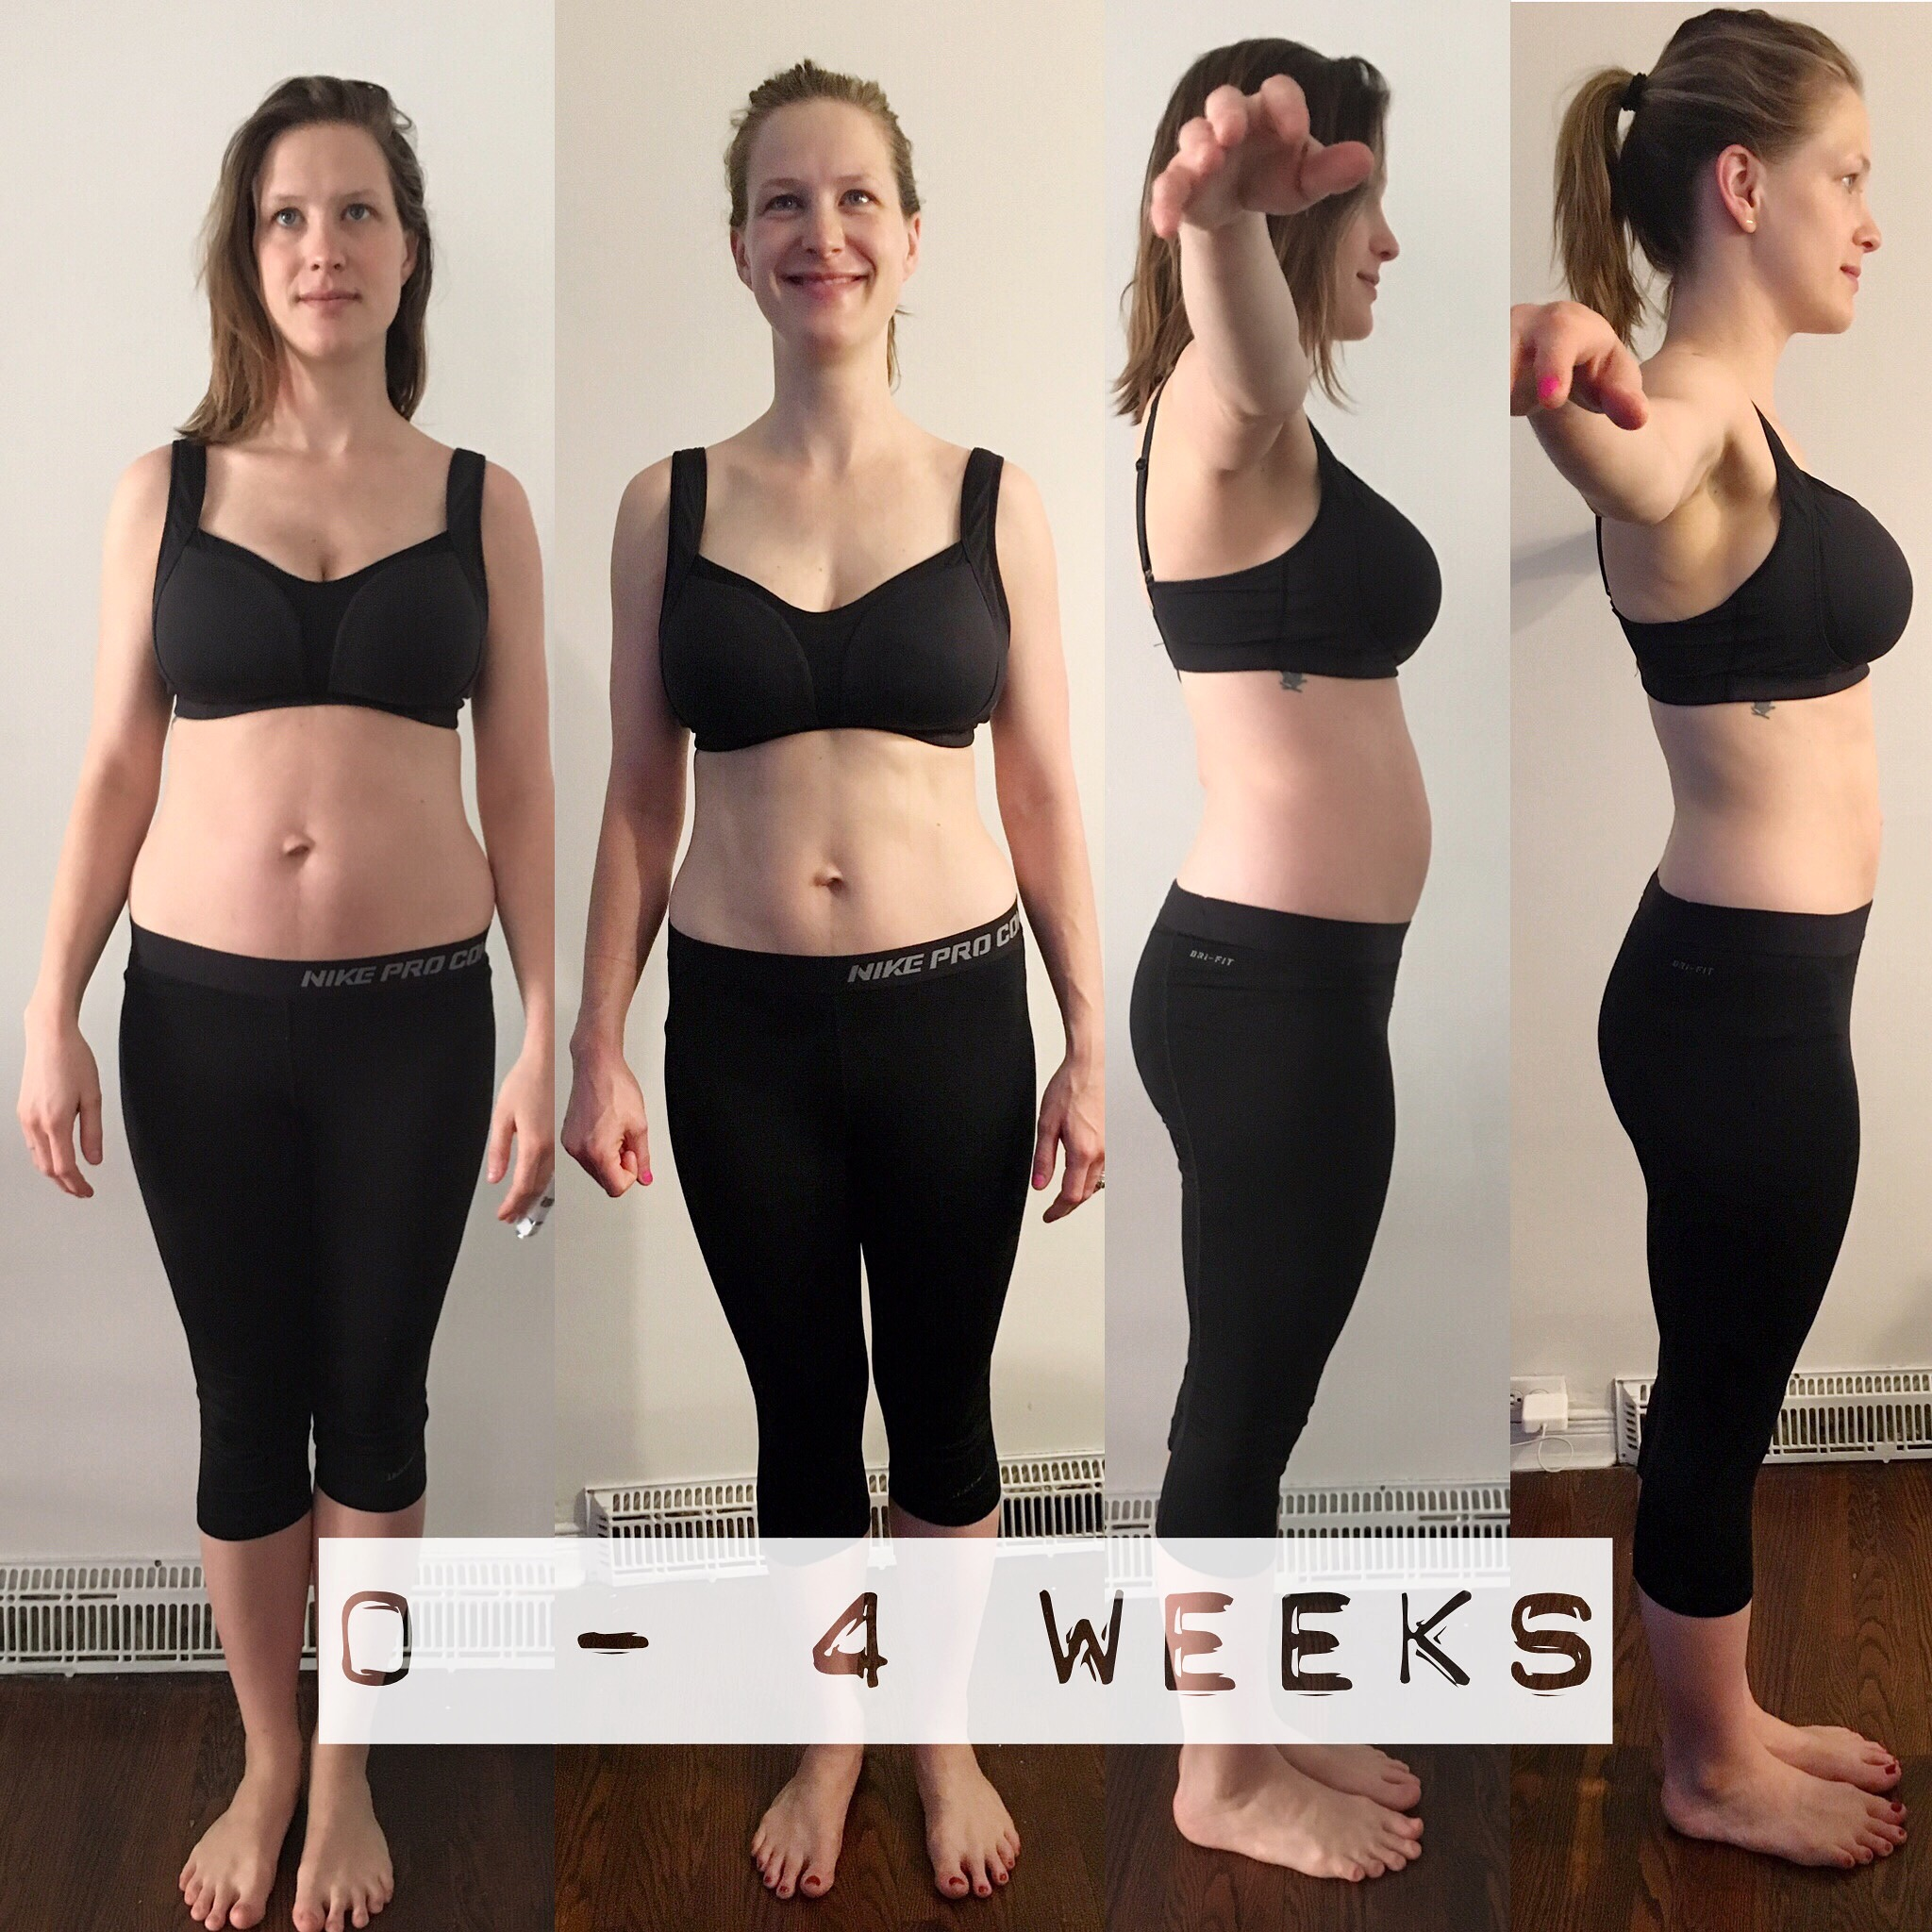 From beginning of Pre-Training to four weeks into BBG 1.0